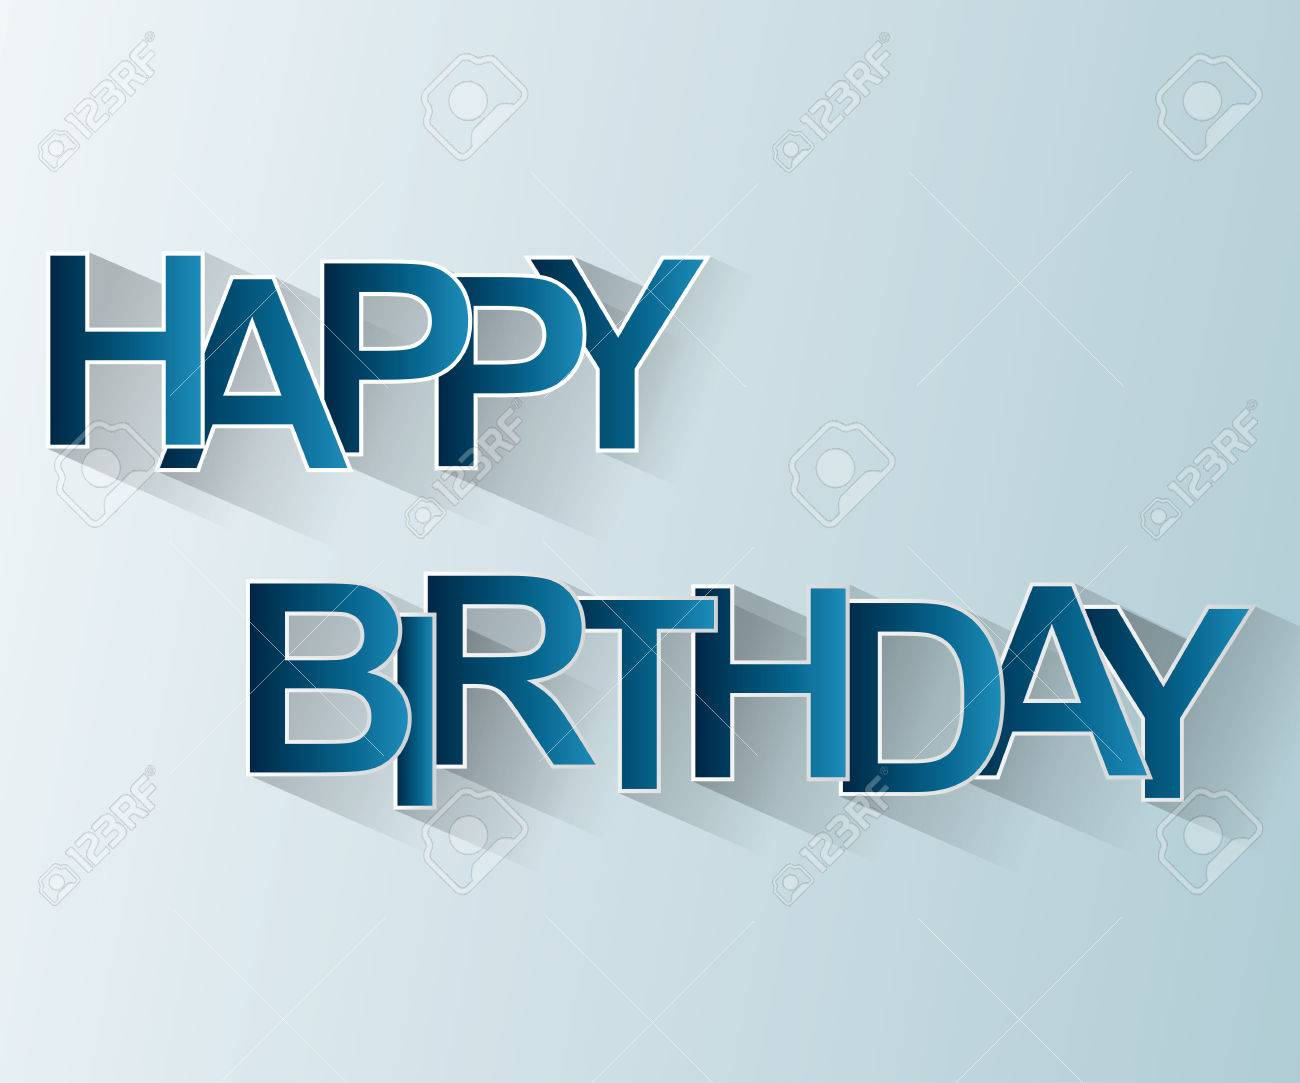 Happy Birthday Card Easy To Edit Adjust Color And Size Royalty – Birthday Card Editing Photo